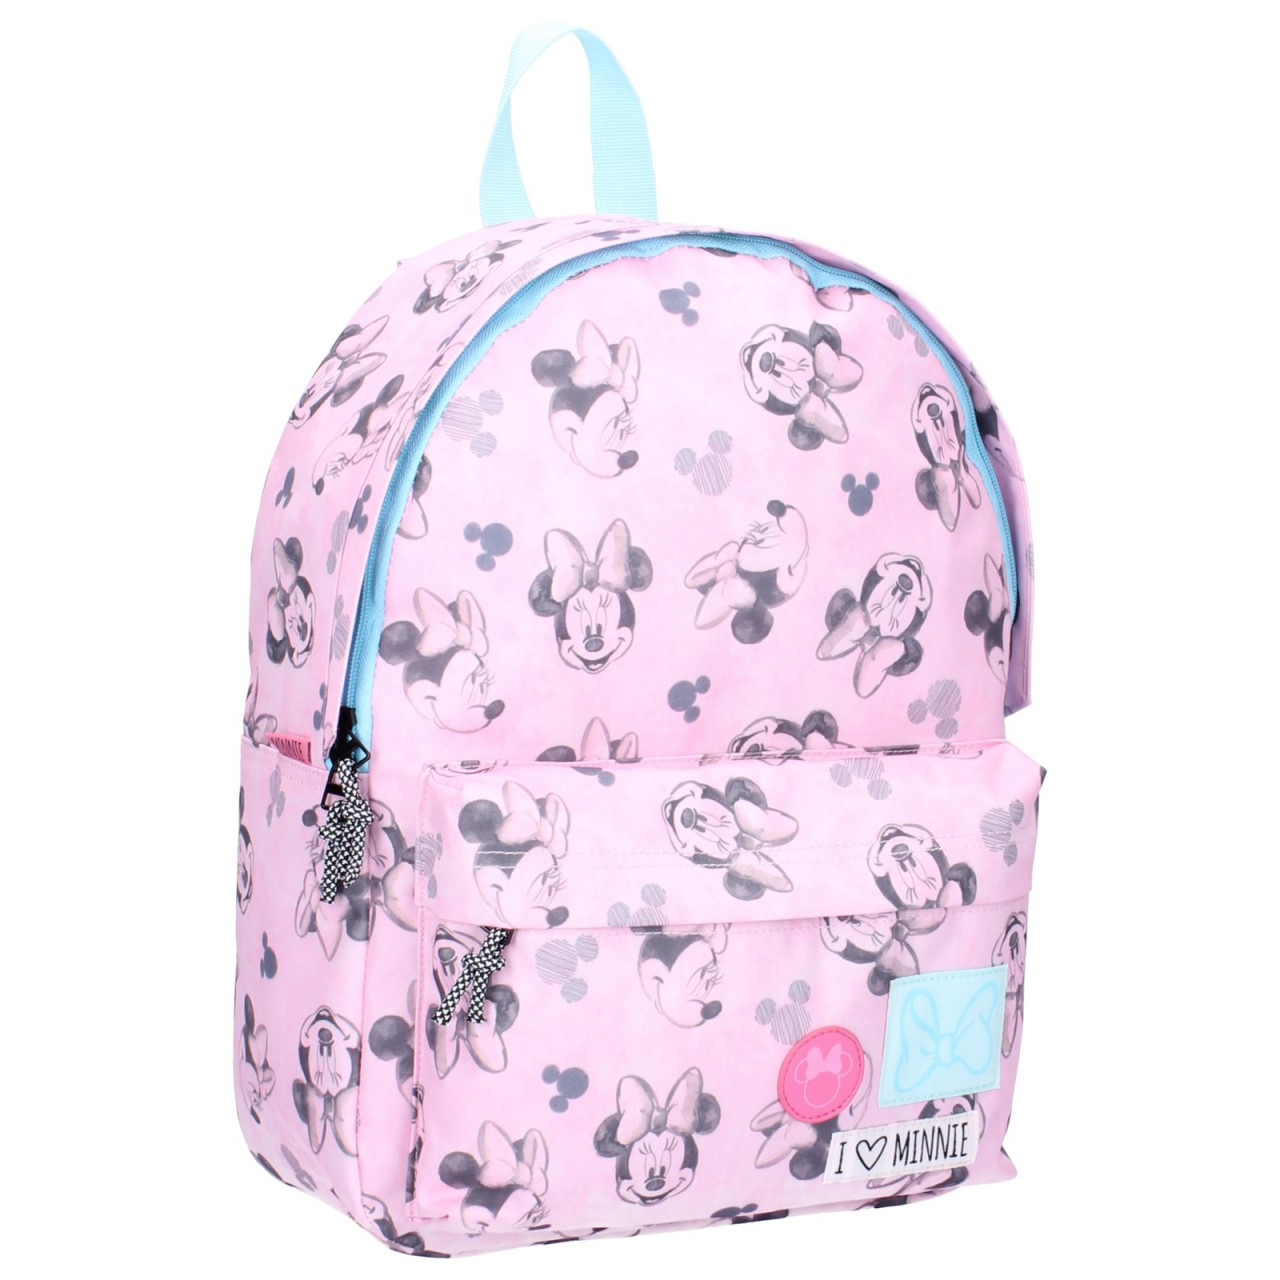 HTI-Living Minnie Mouse Most Adored Rucksack